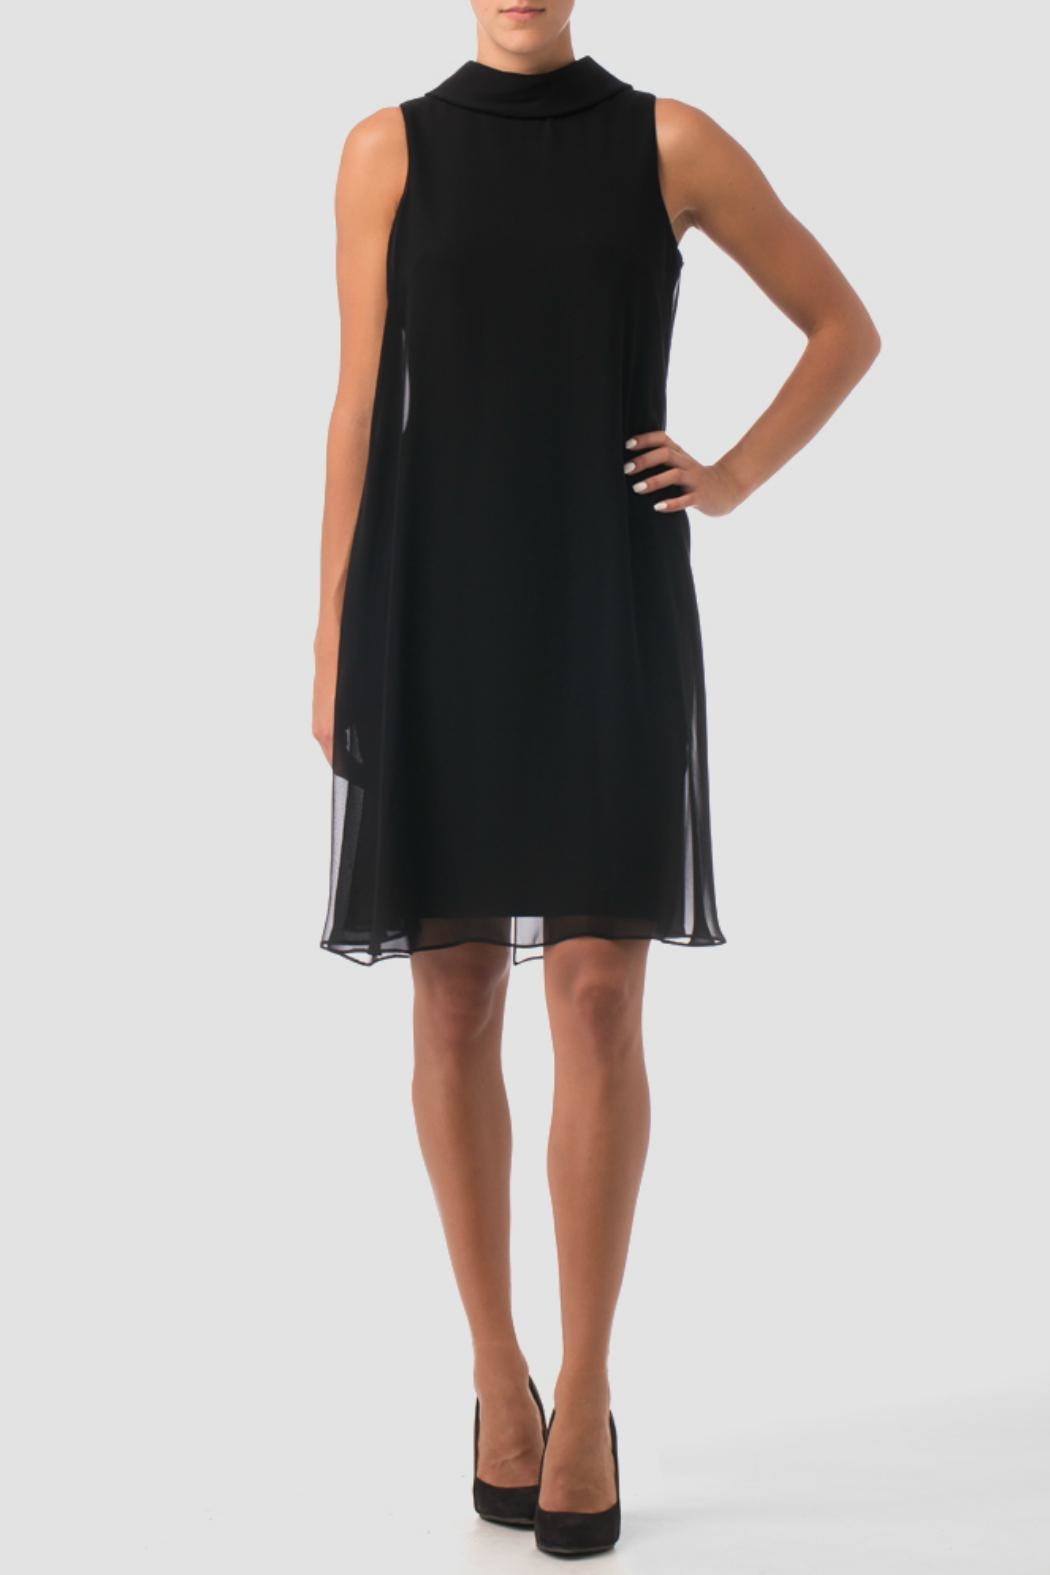 Joseph Ribkoff Black Shift Dress - Front Cropped Image